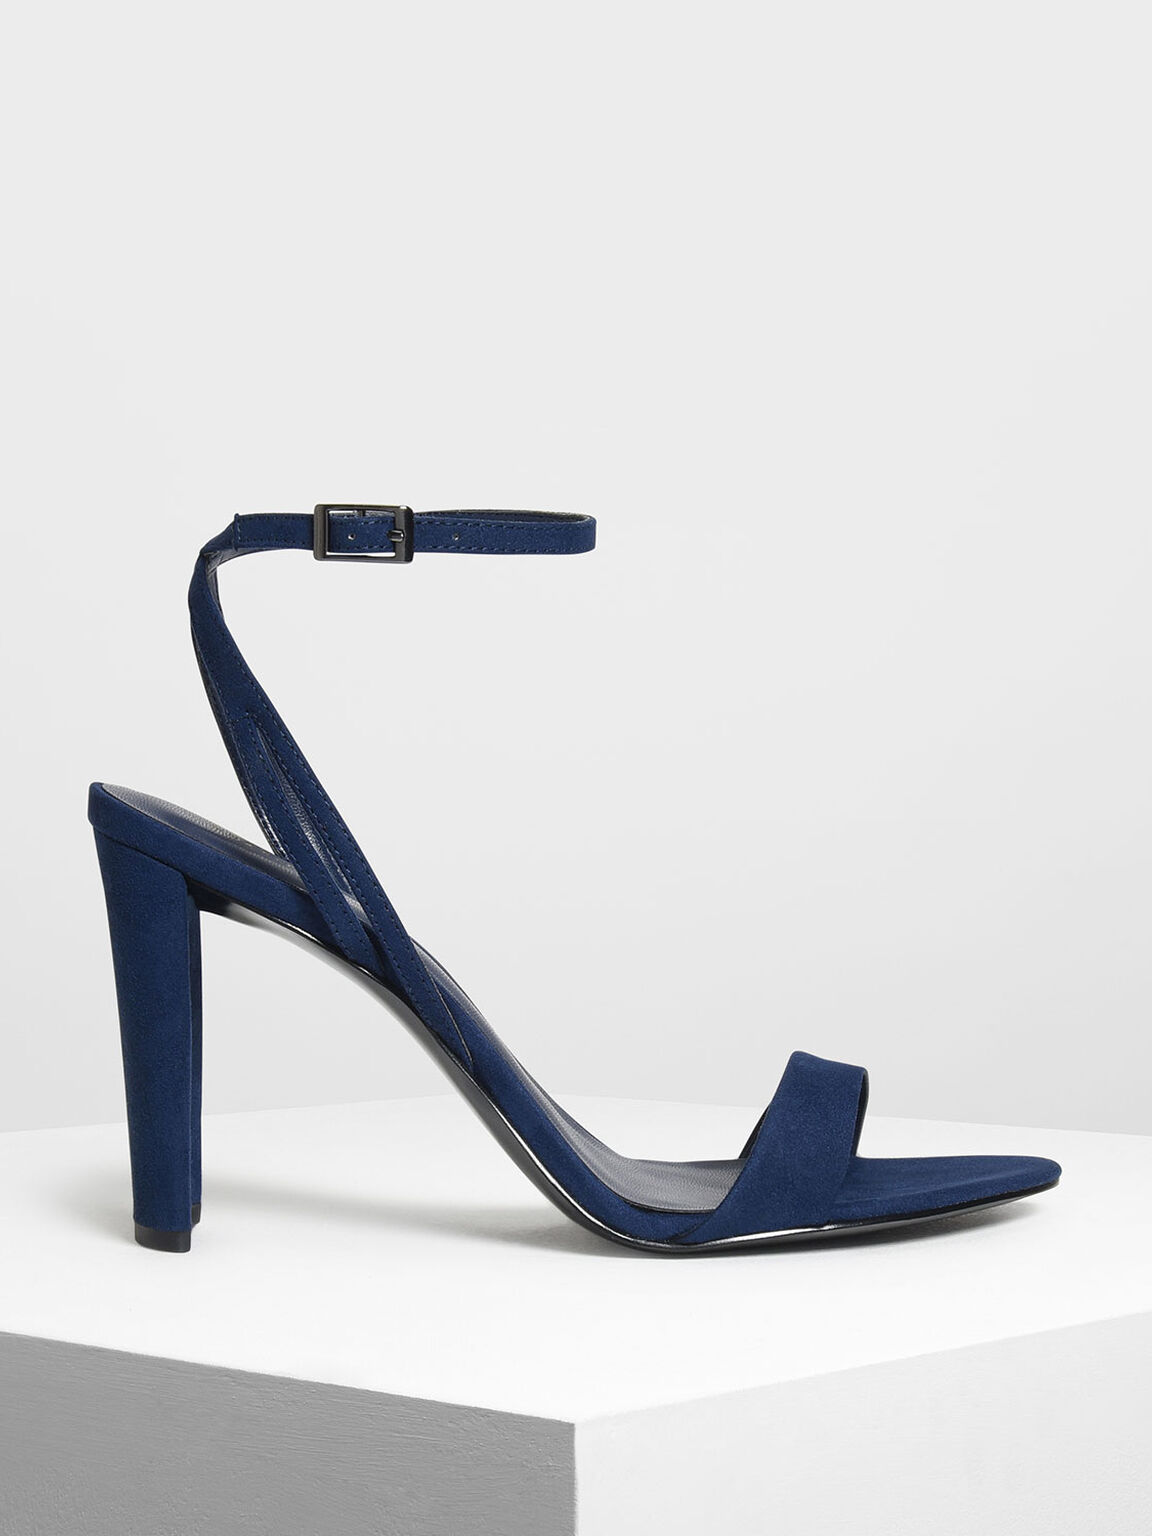 Ankle Strap Heeled Sandals, Dark Blue, hi-res